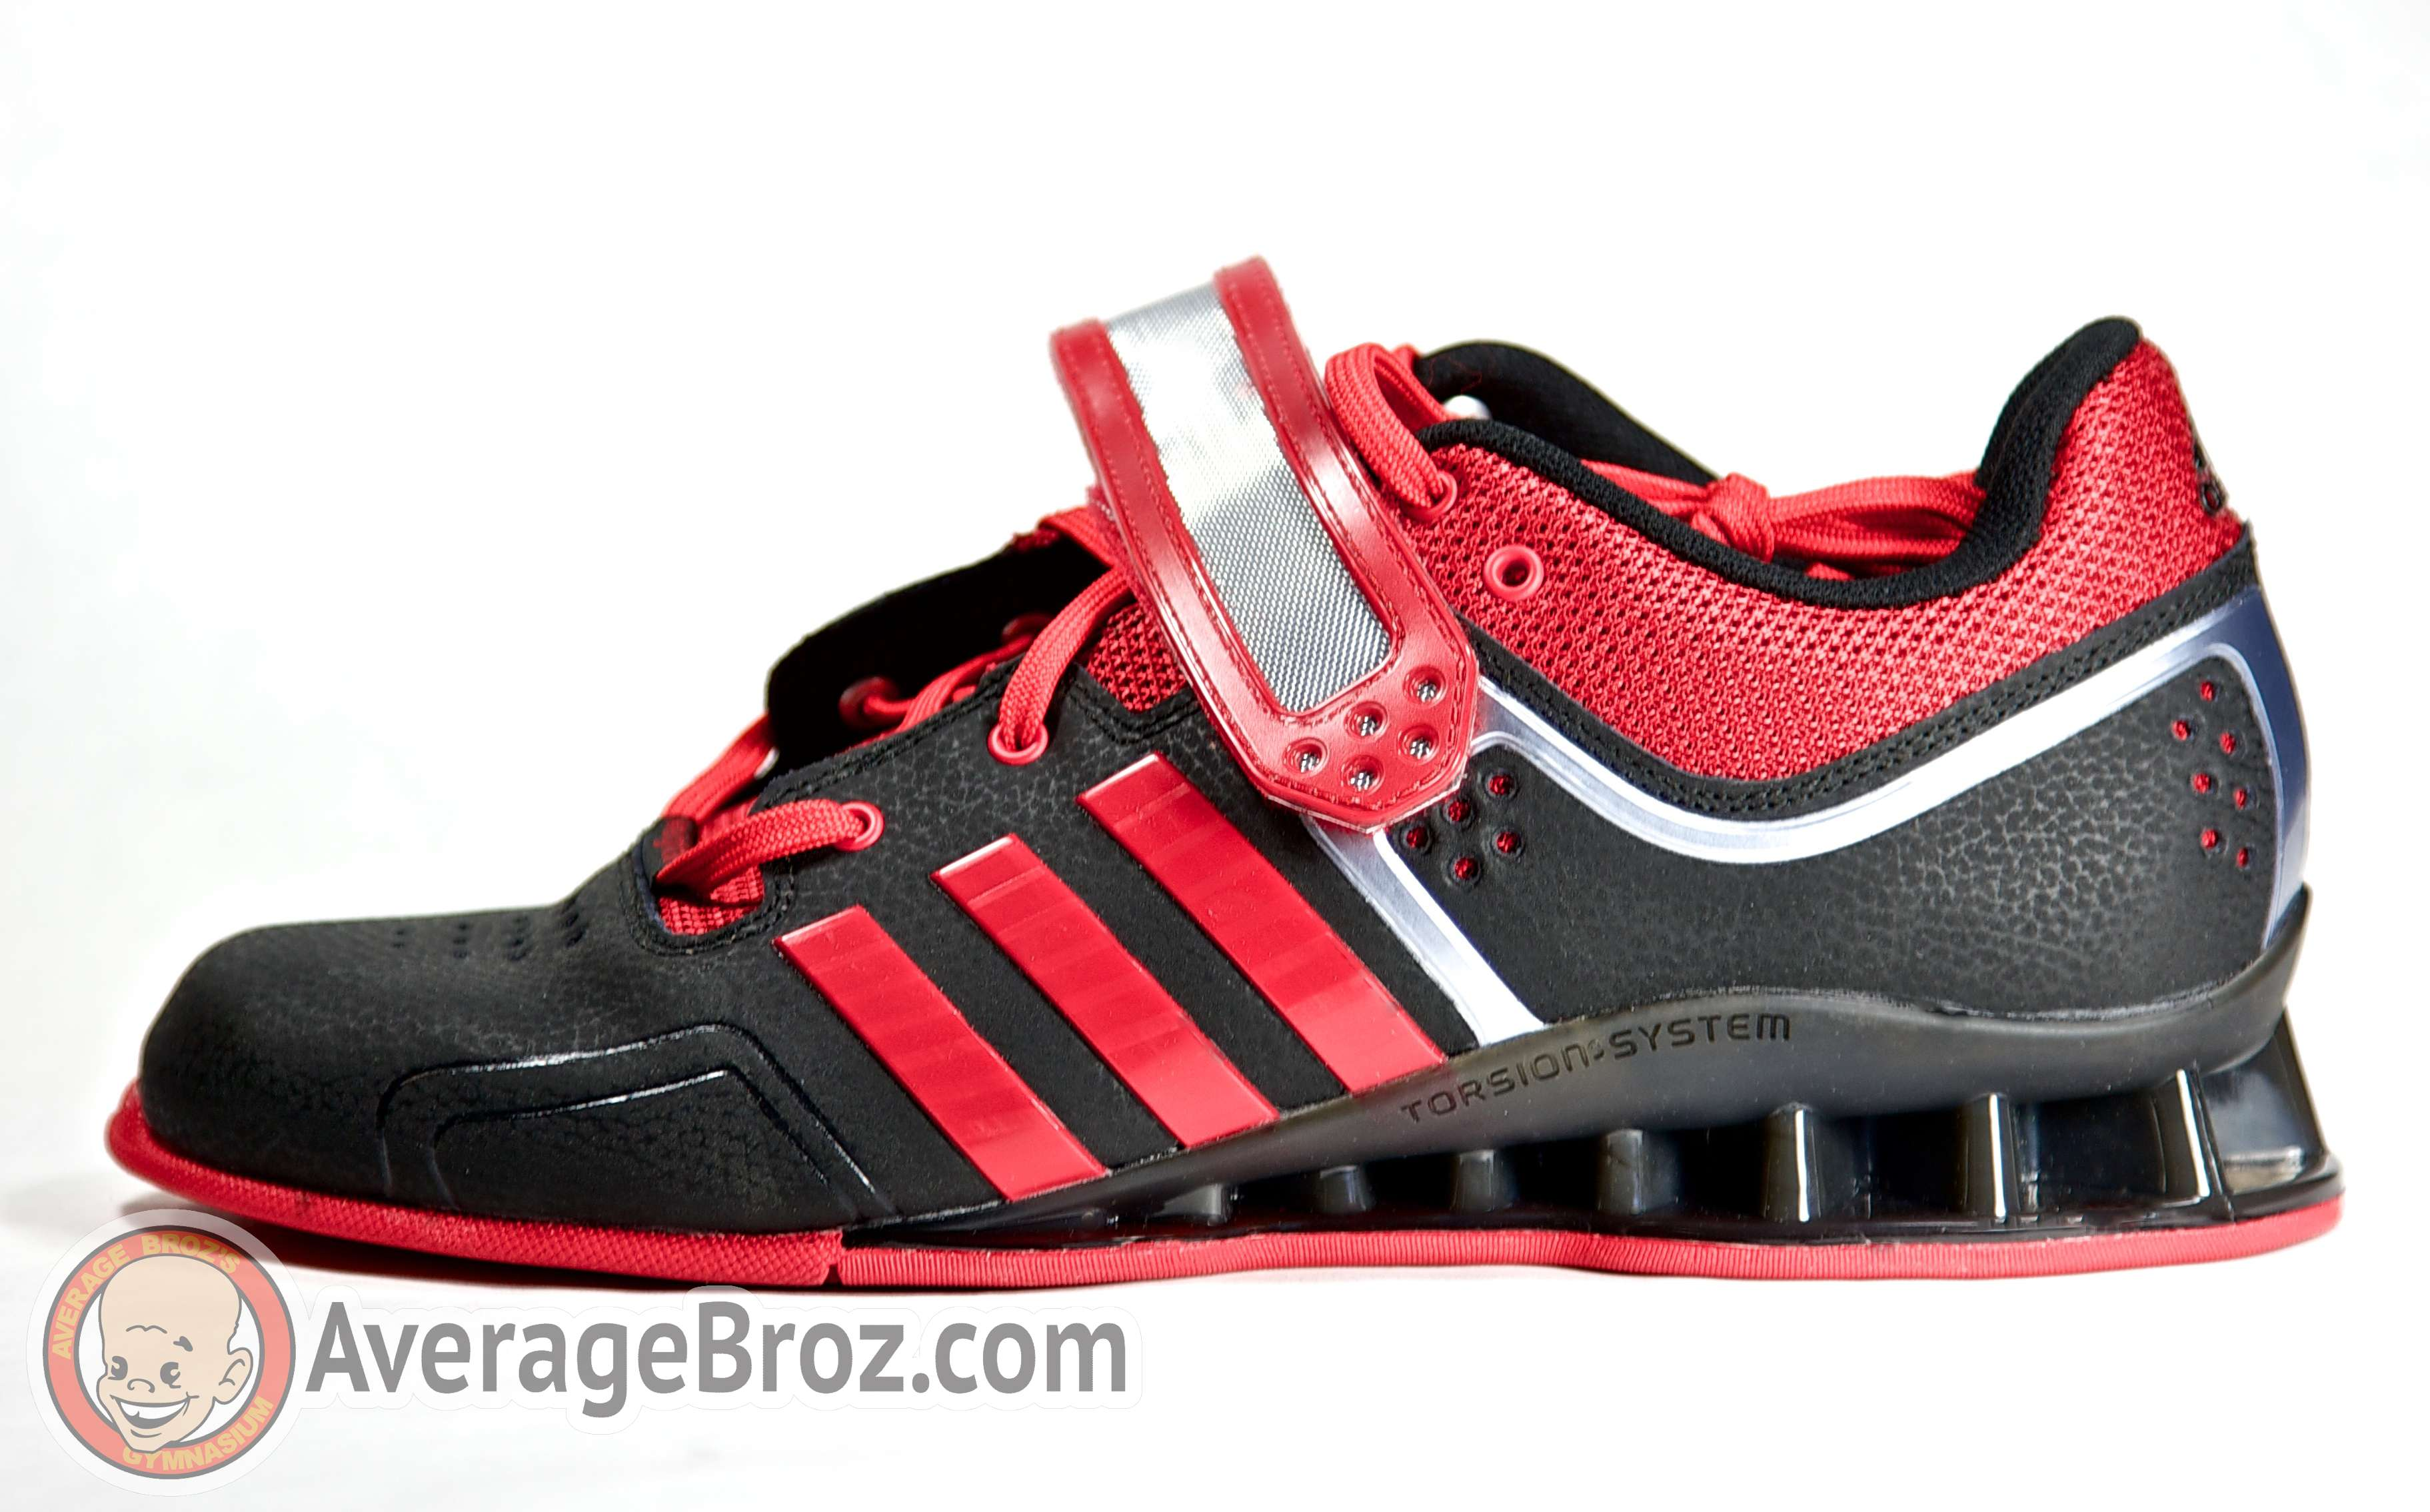 2014 Adidas AdiPower Weightlifting Shoes